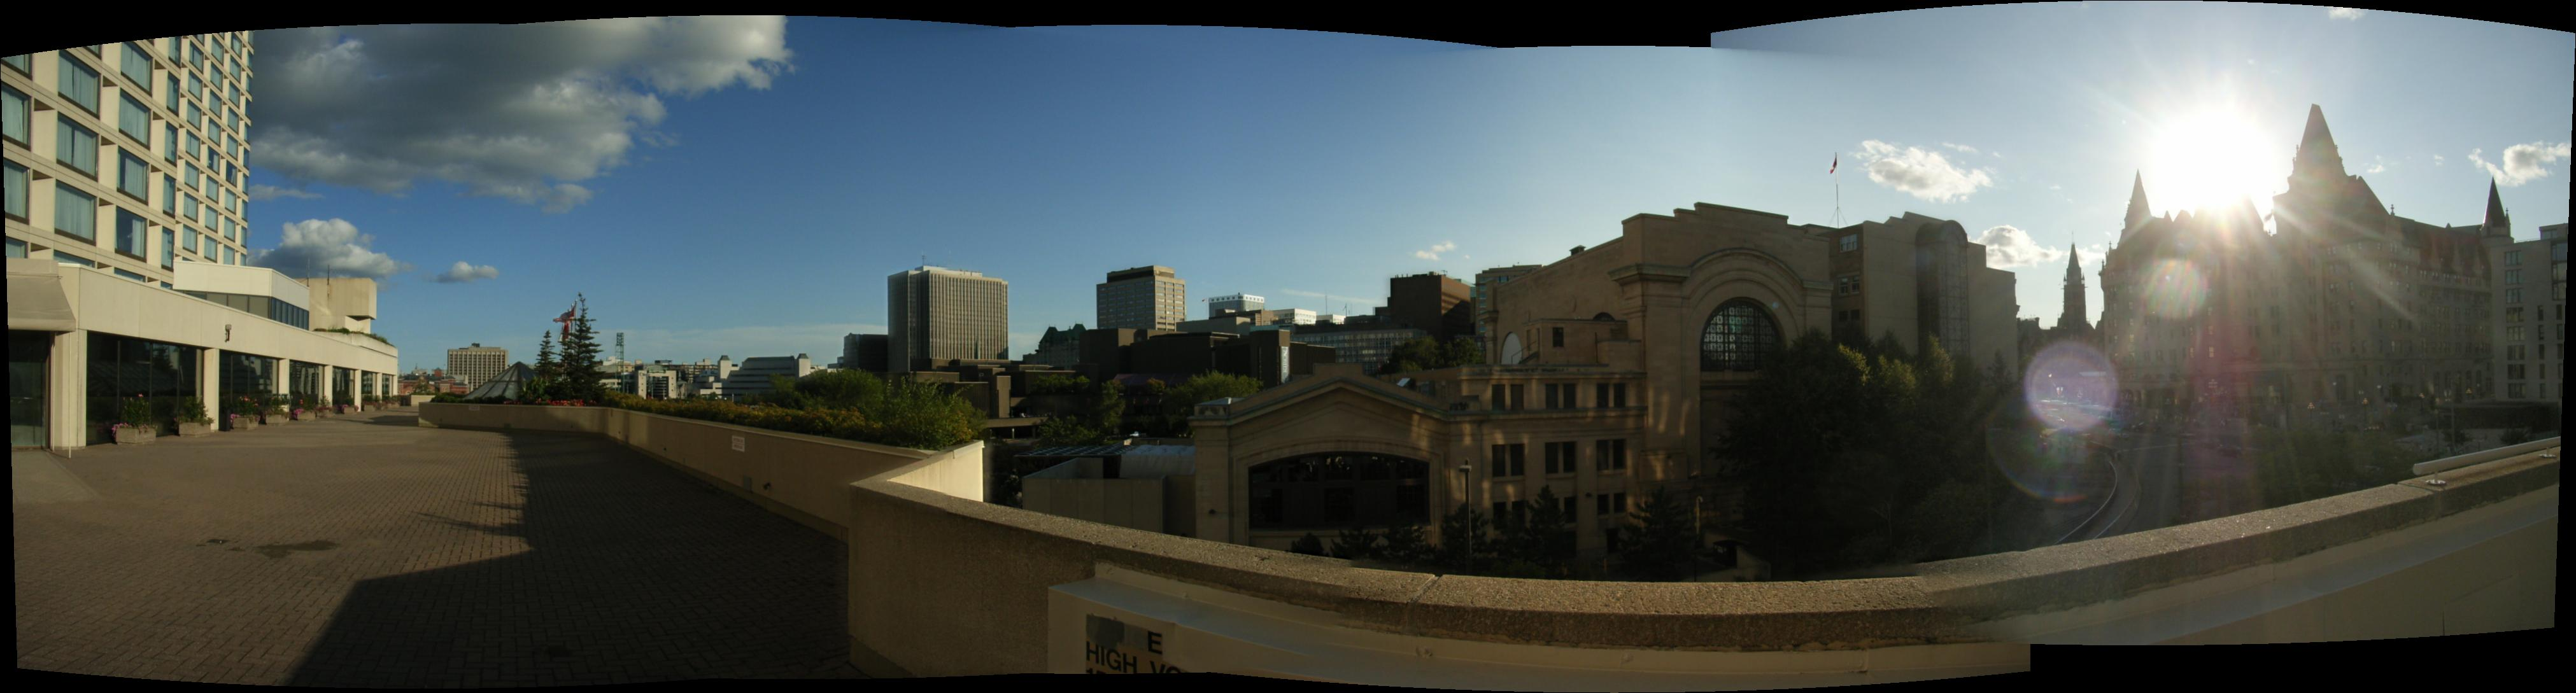 A panoramic view of downtown Ottawa from the Westin Hotel to the Fairmont Chateau Laurier Hotel, taken from the roof of the Rideau Centre.